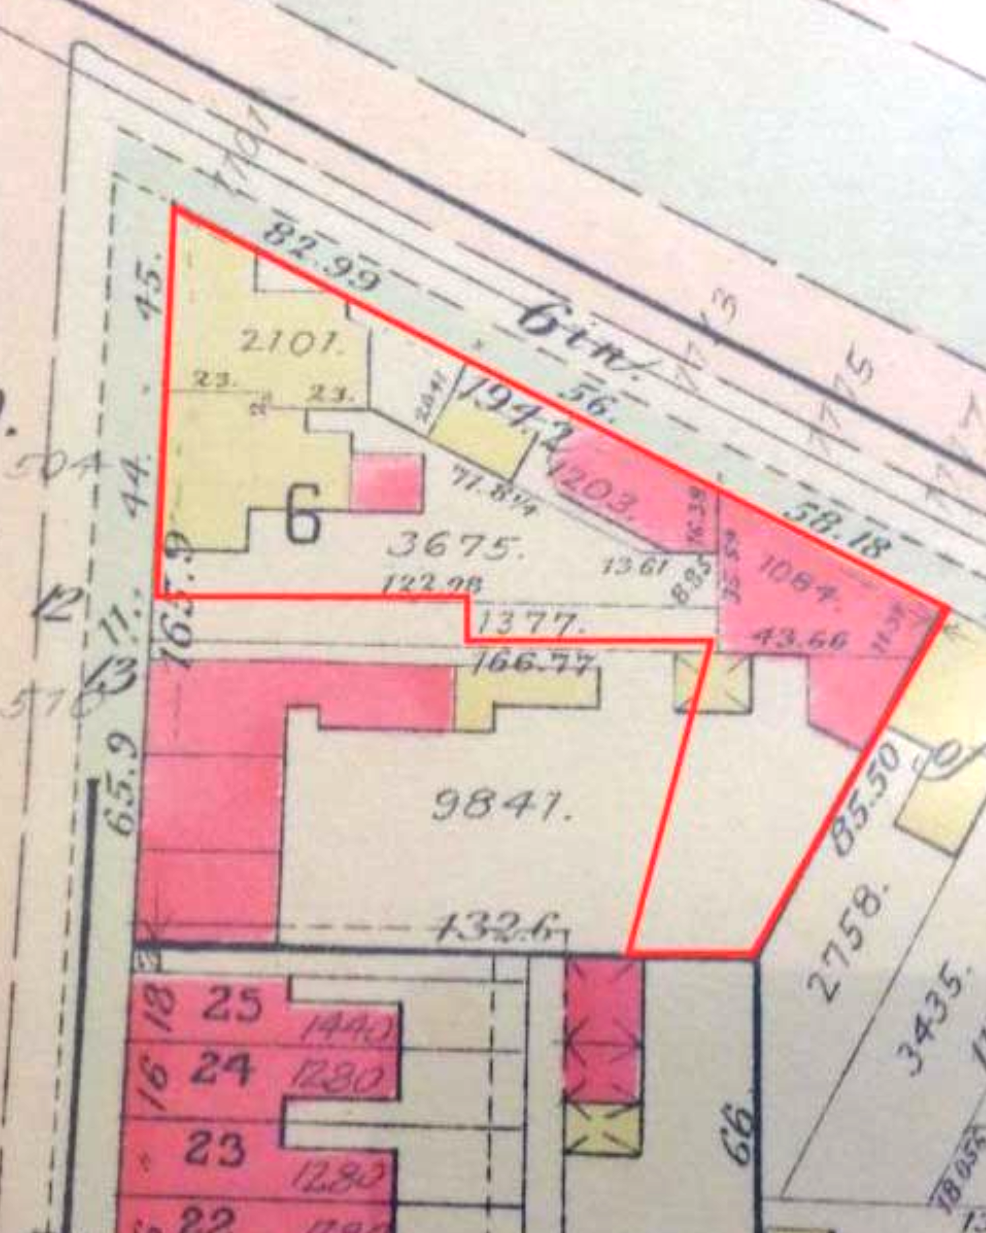 2.) 1903 Baist Map showing continued development of Square 994; the current footprint of Frager's Hardware property is highlighted in red. (Baist Map, Volume 2, Plate 30,1903)